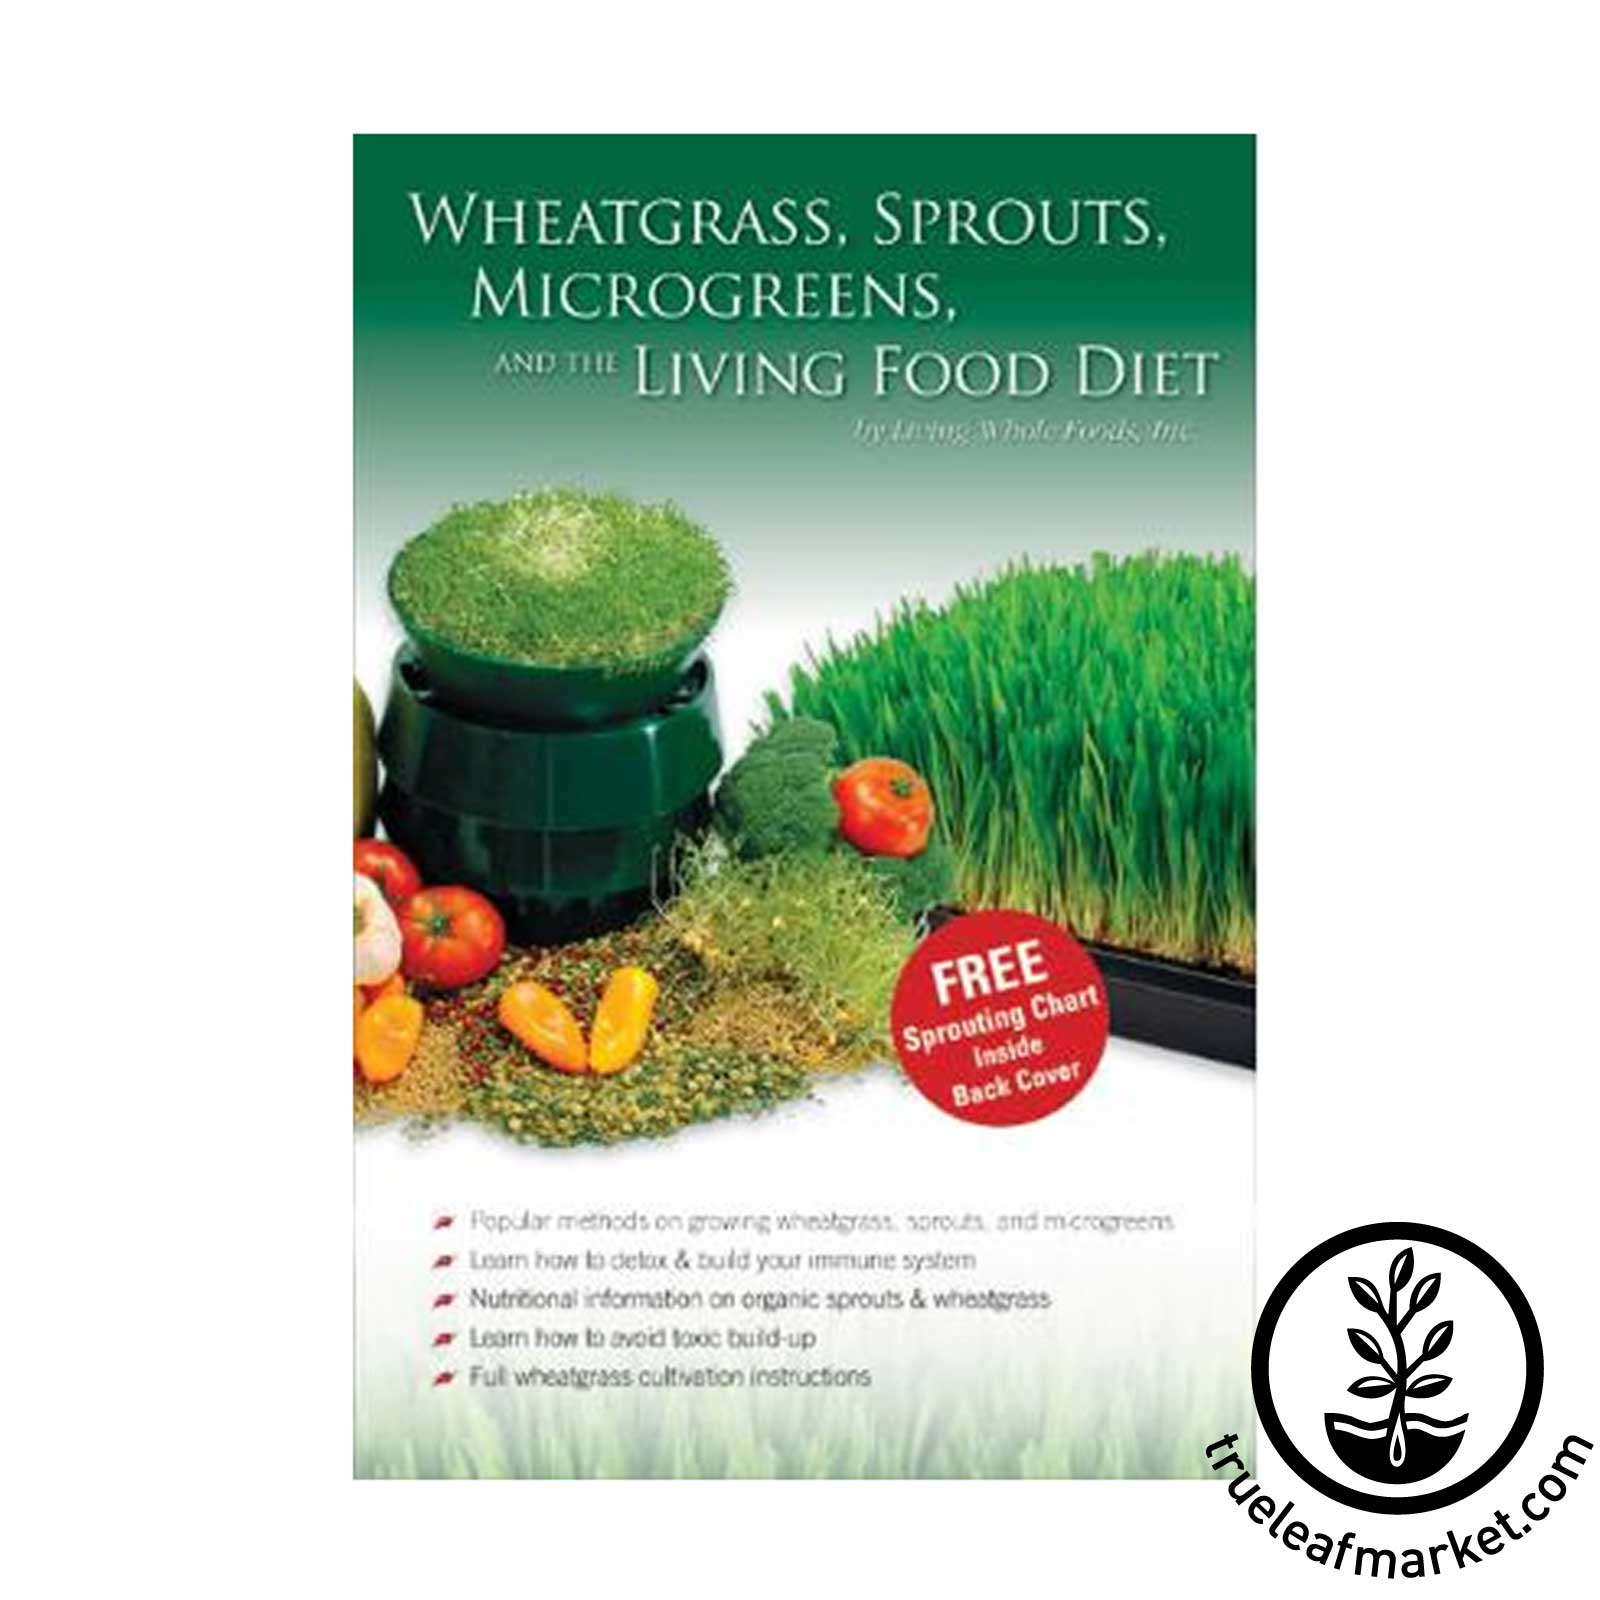 Wheatgrass, sprouts, and the living food diet book